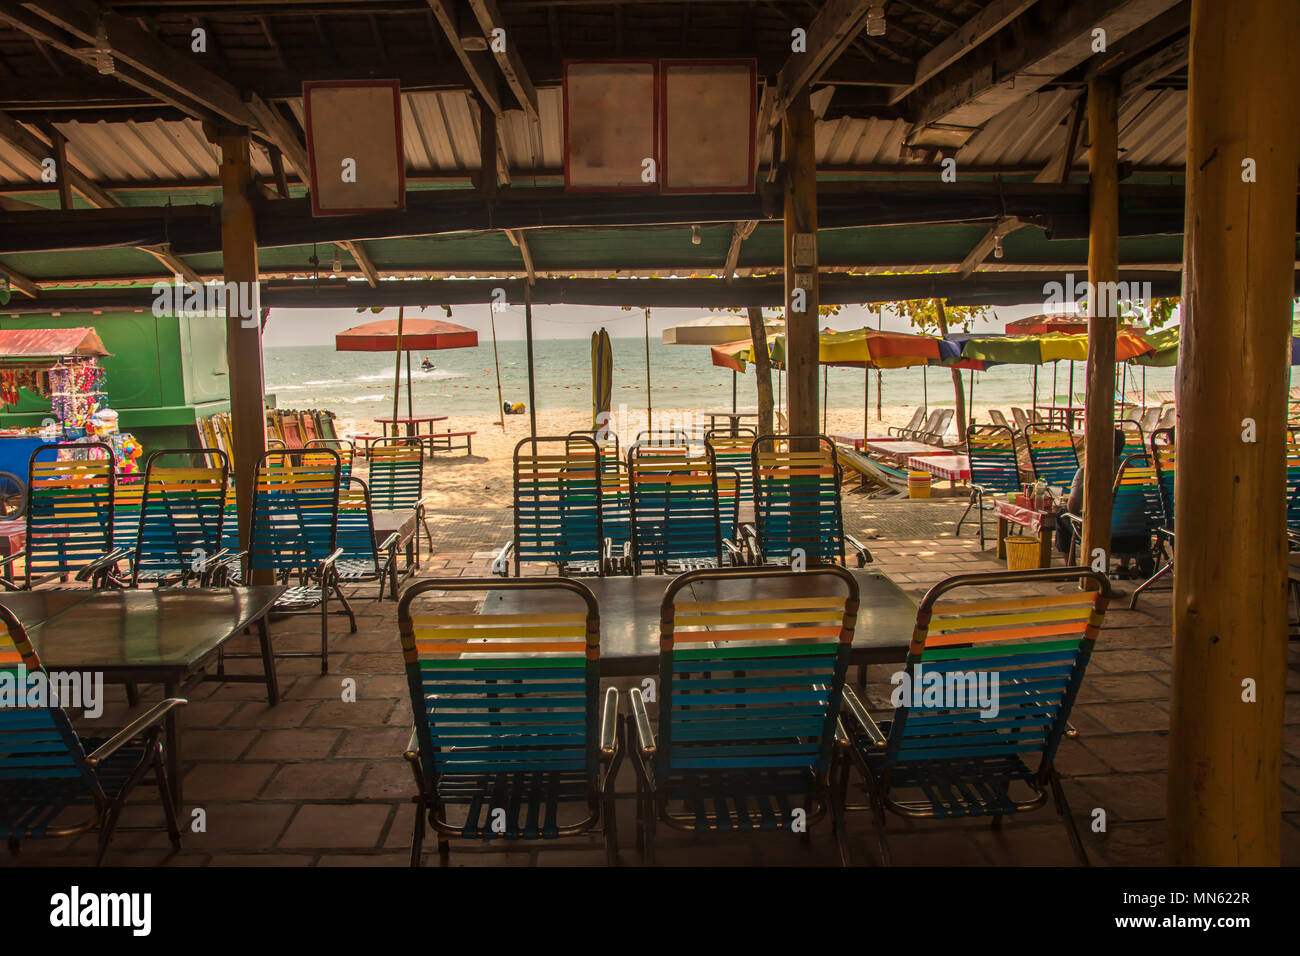 facilities of a beach bar and in the background the sea on the ochheuteal beaches near the city of Sihanoukville. Cambodia - Stock Image